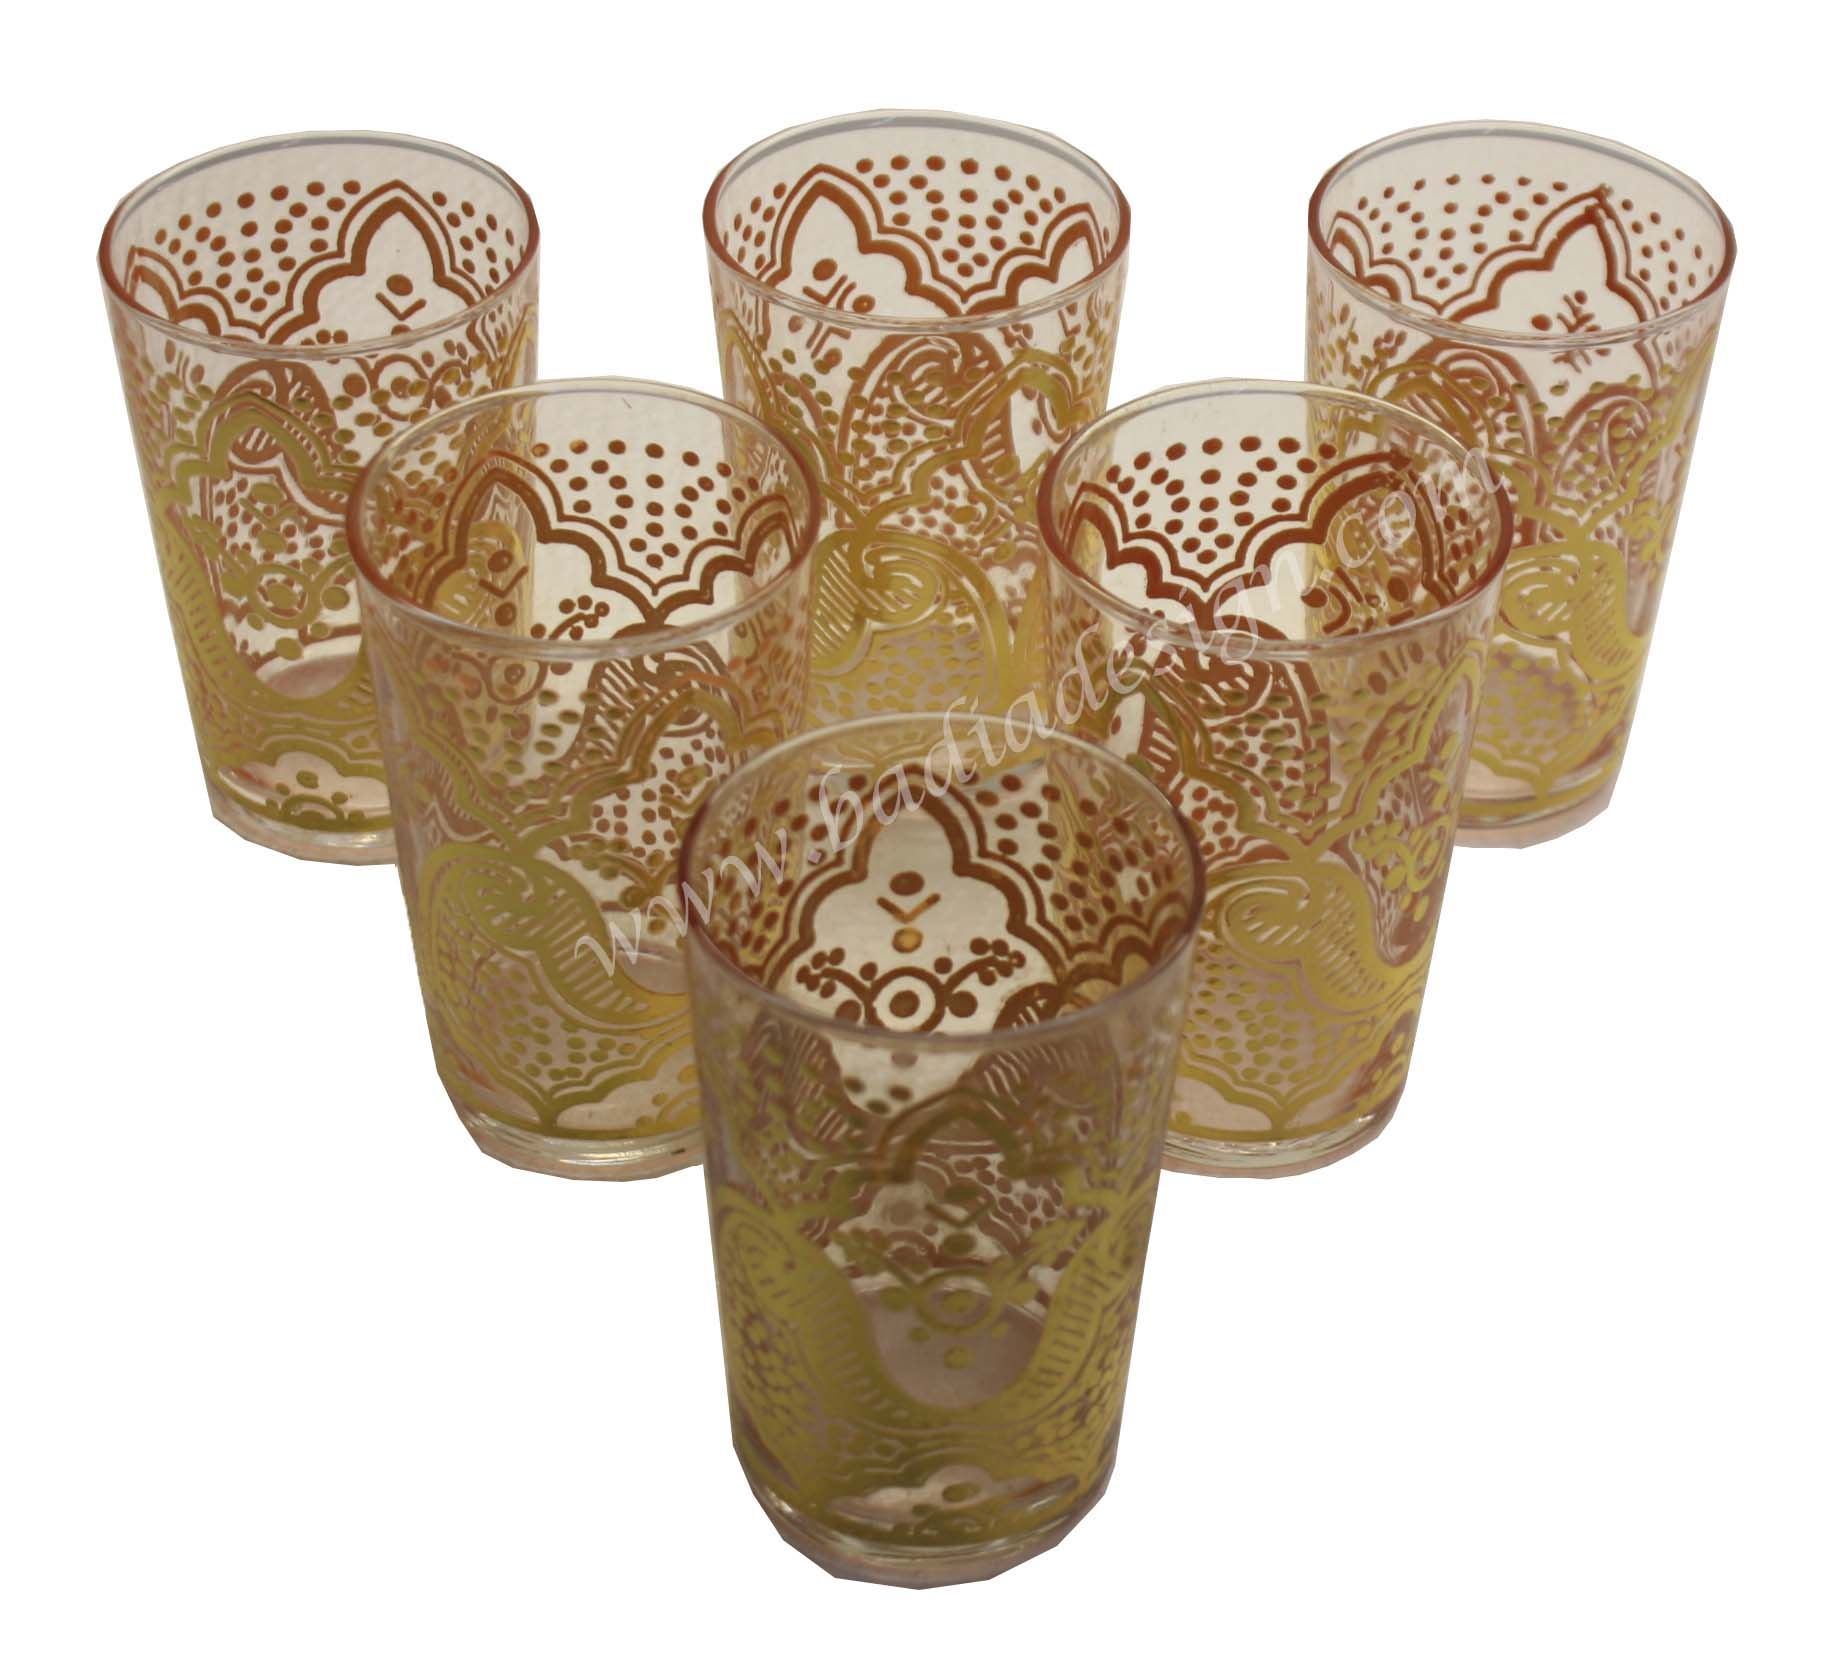 moroccan-clear-tea-glasses-tg020.jpg